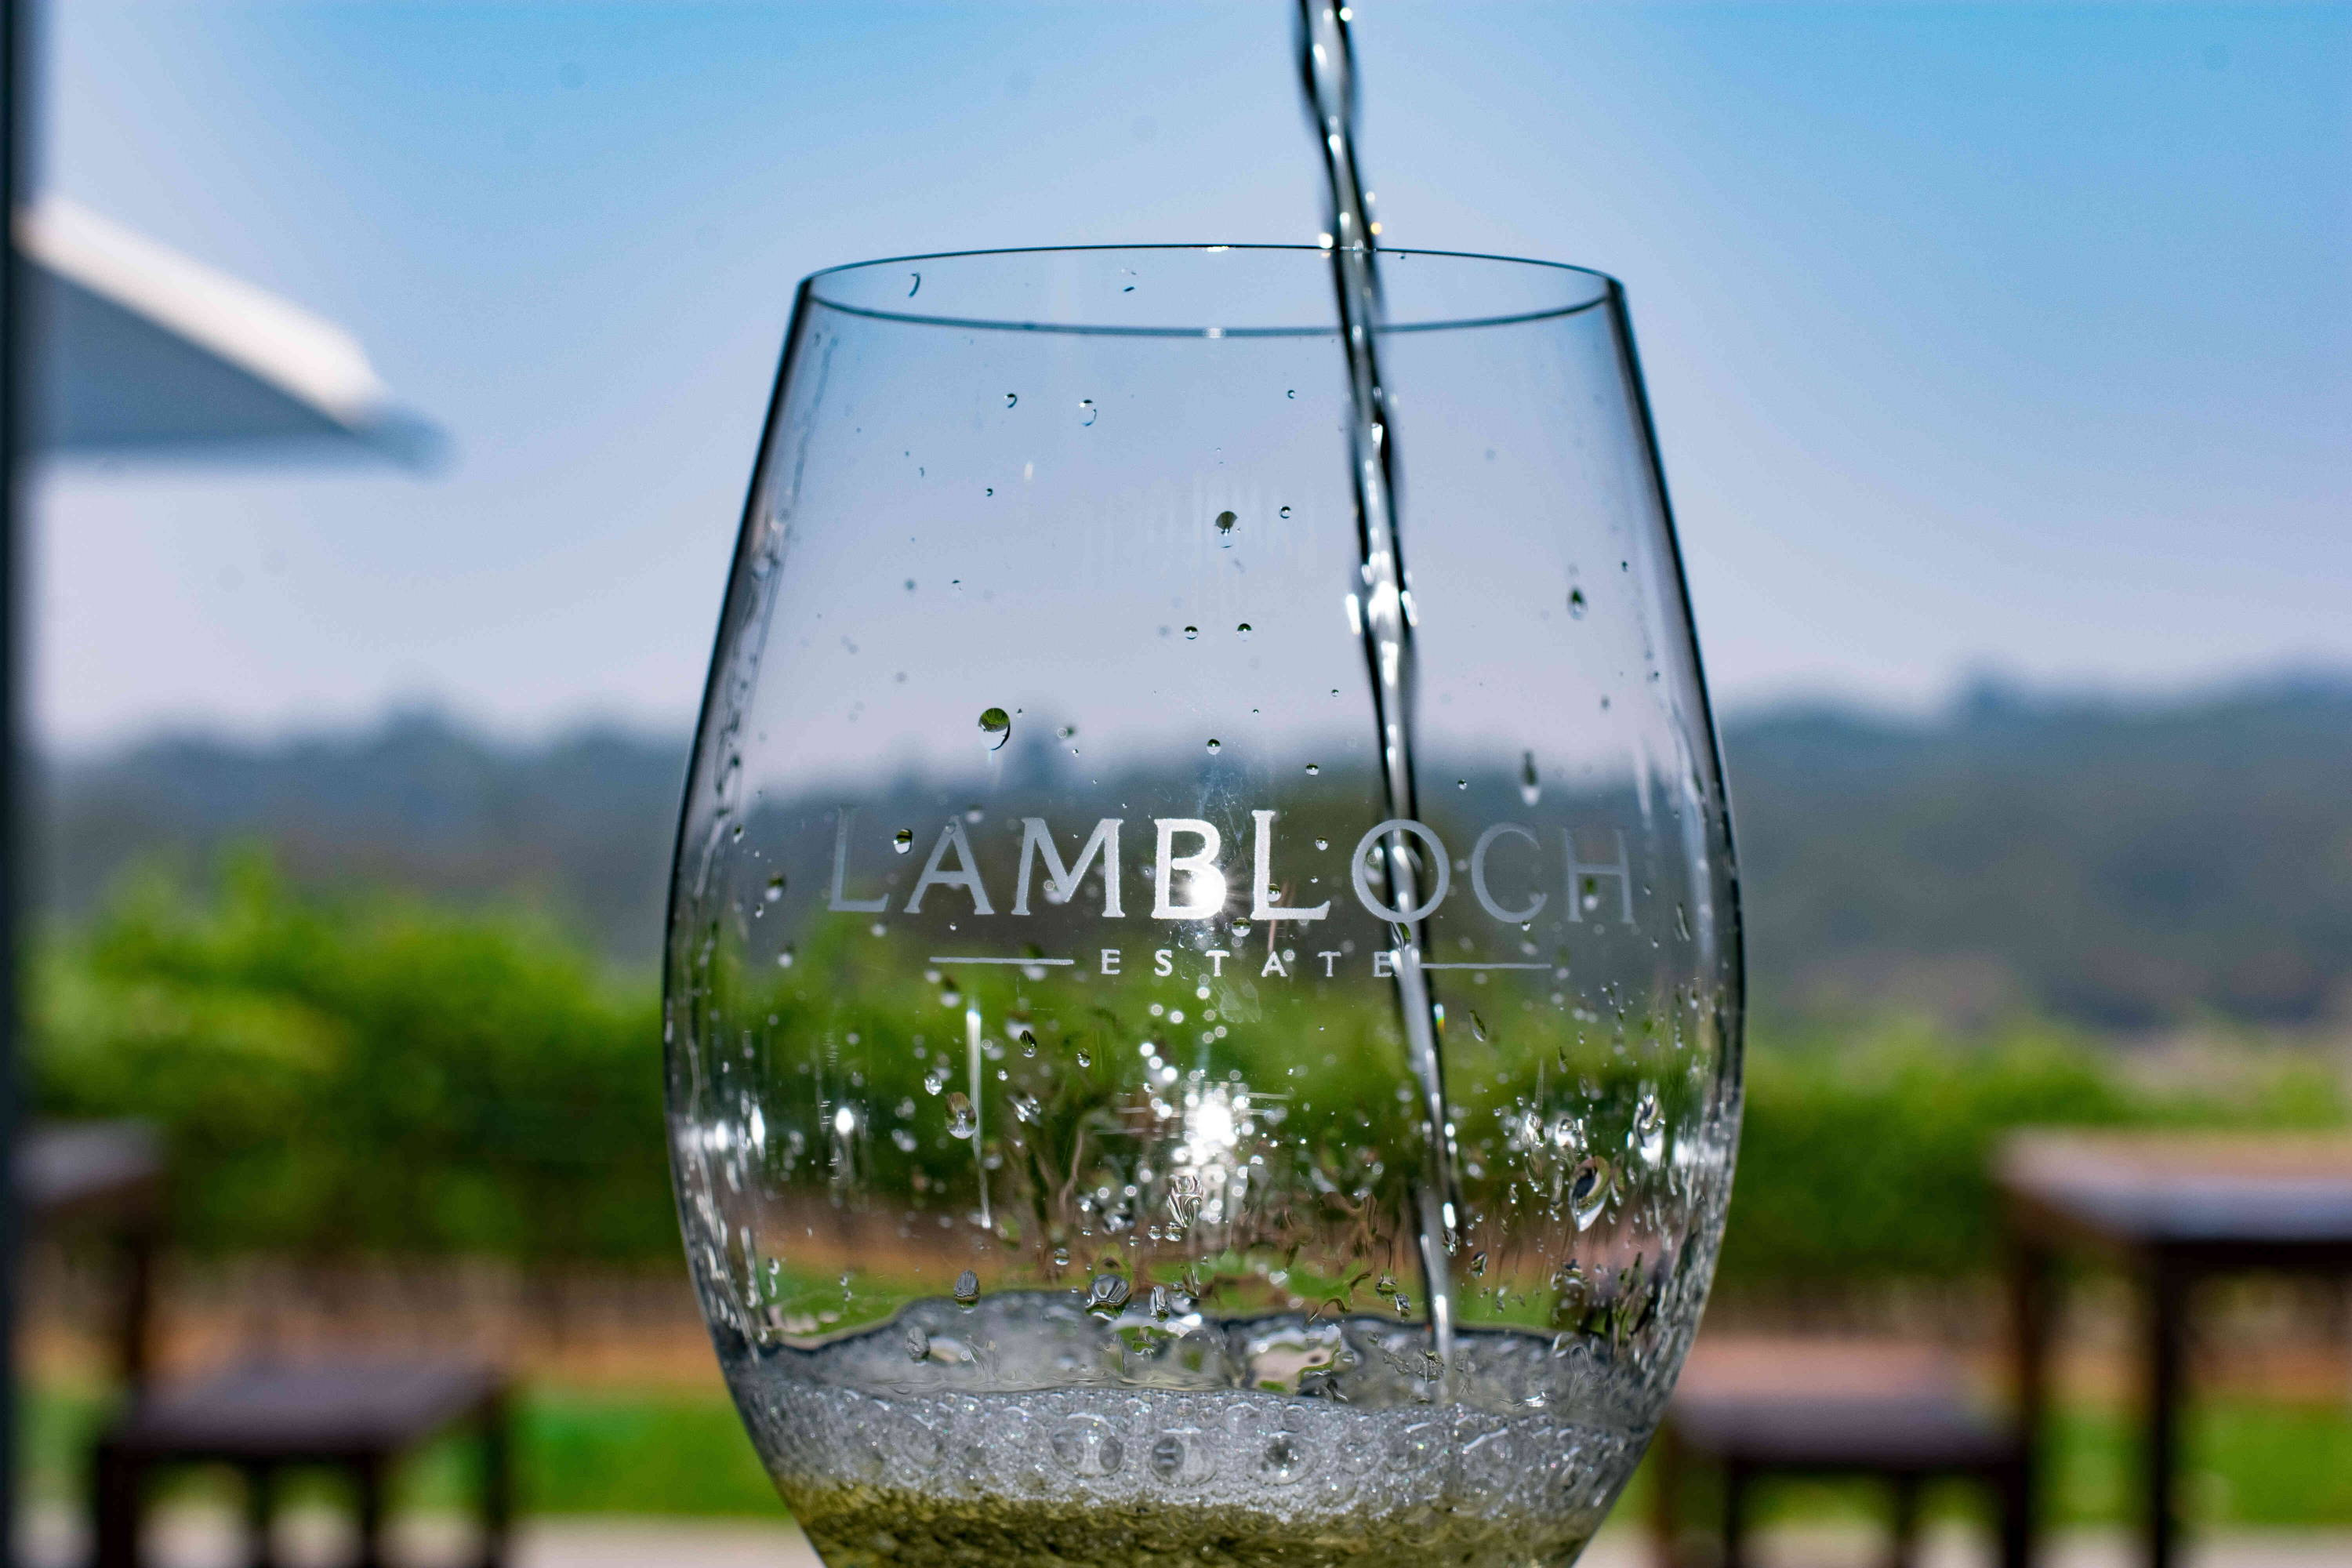 Pouring wine at Lambloch Estate Hunter Valley Vineyard